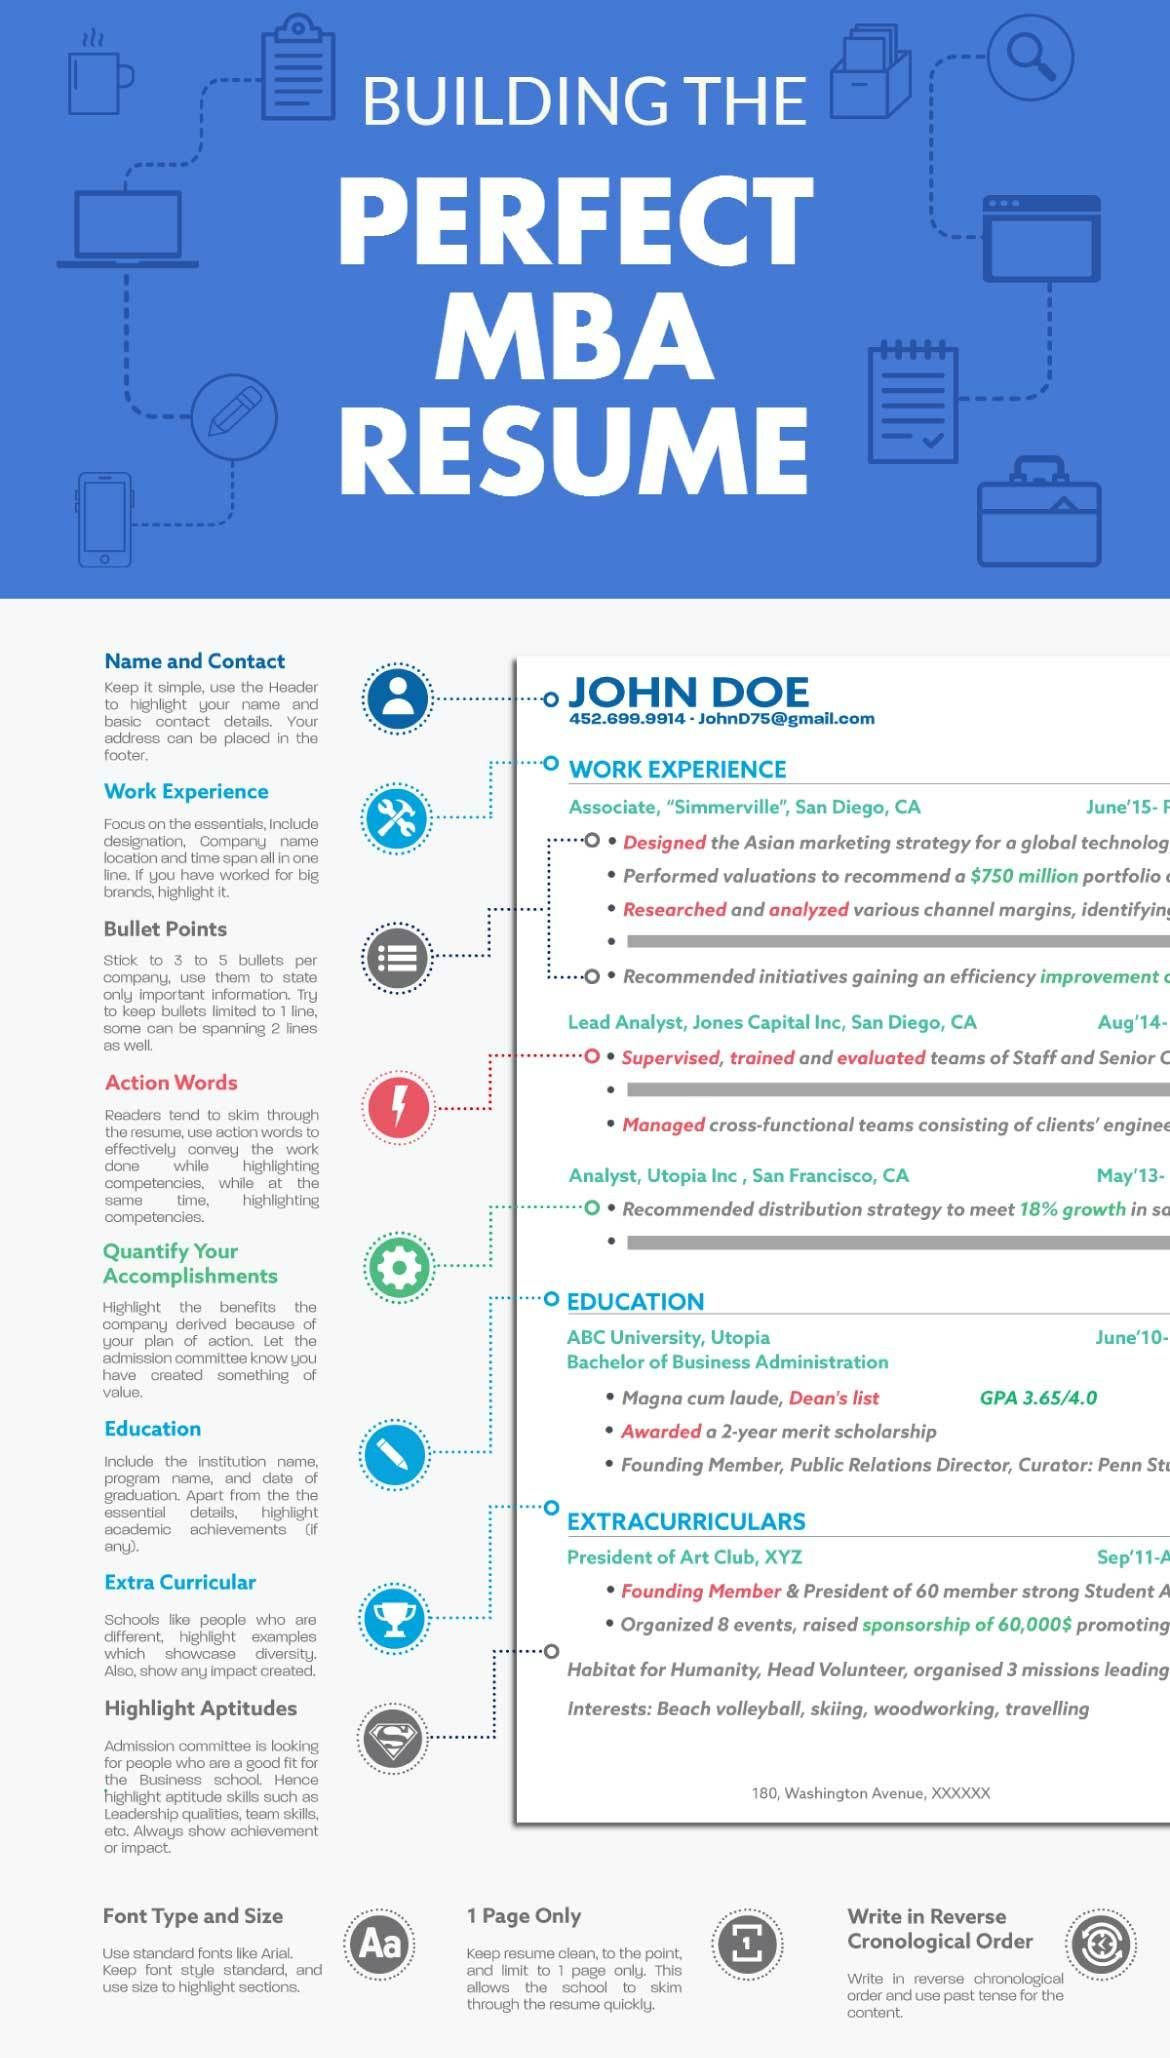 sample resume for mba application india